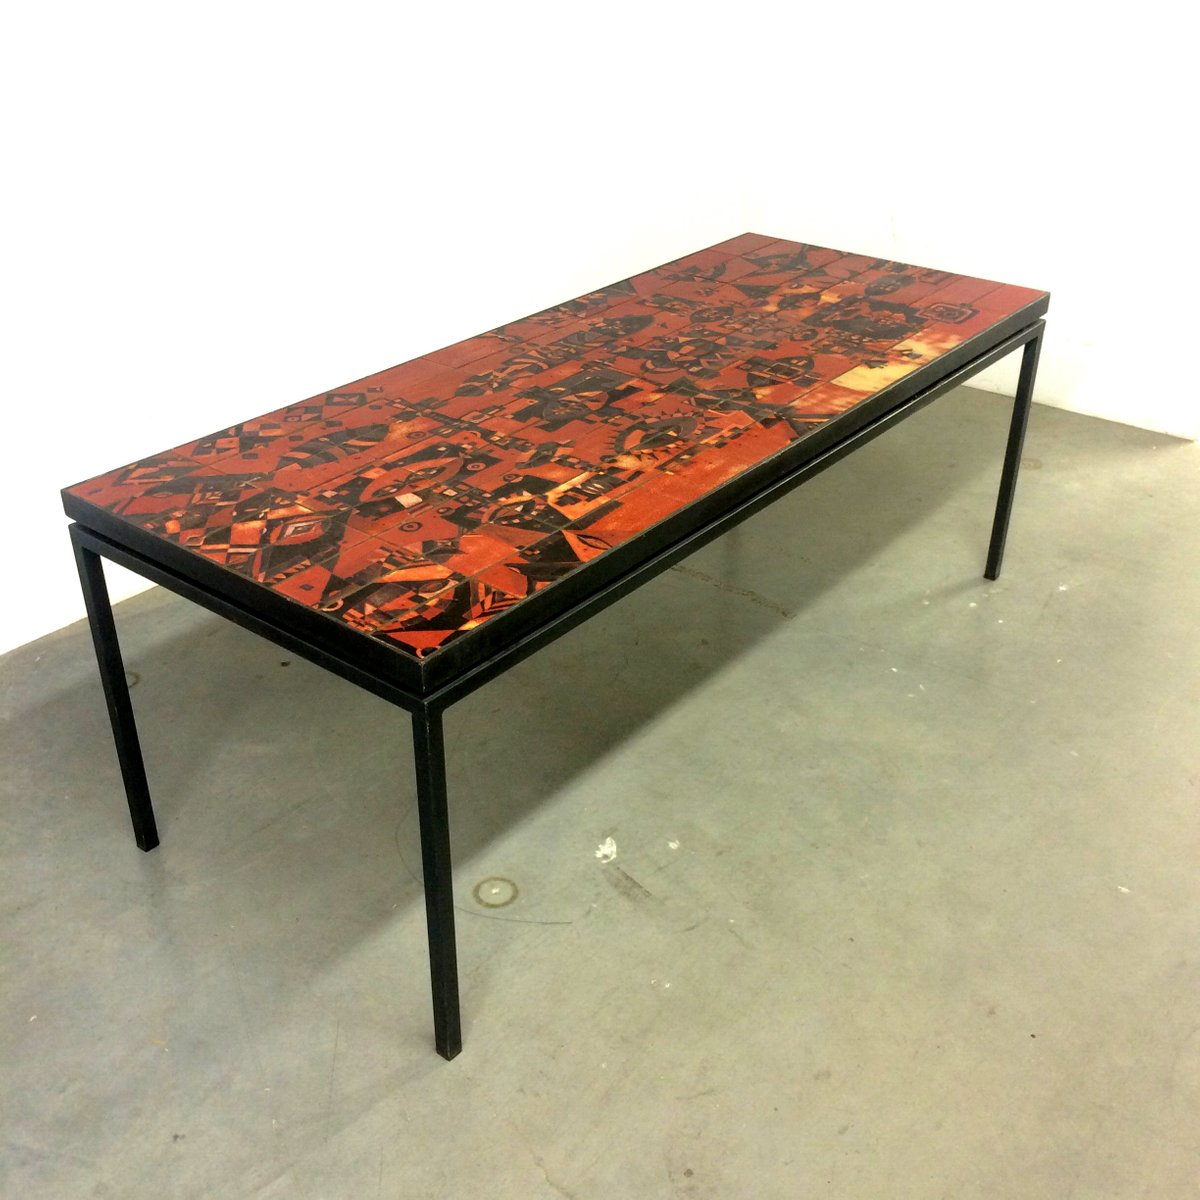 Handmade Dining Table With Tile Top By Wilhelm And Elly Kuch 1967